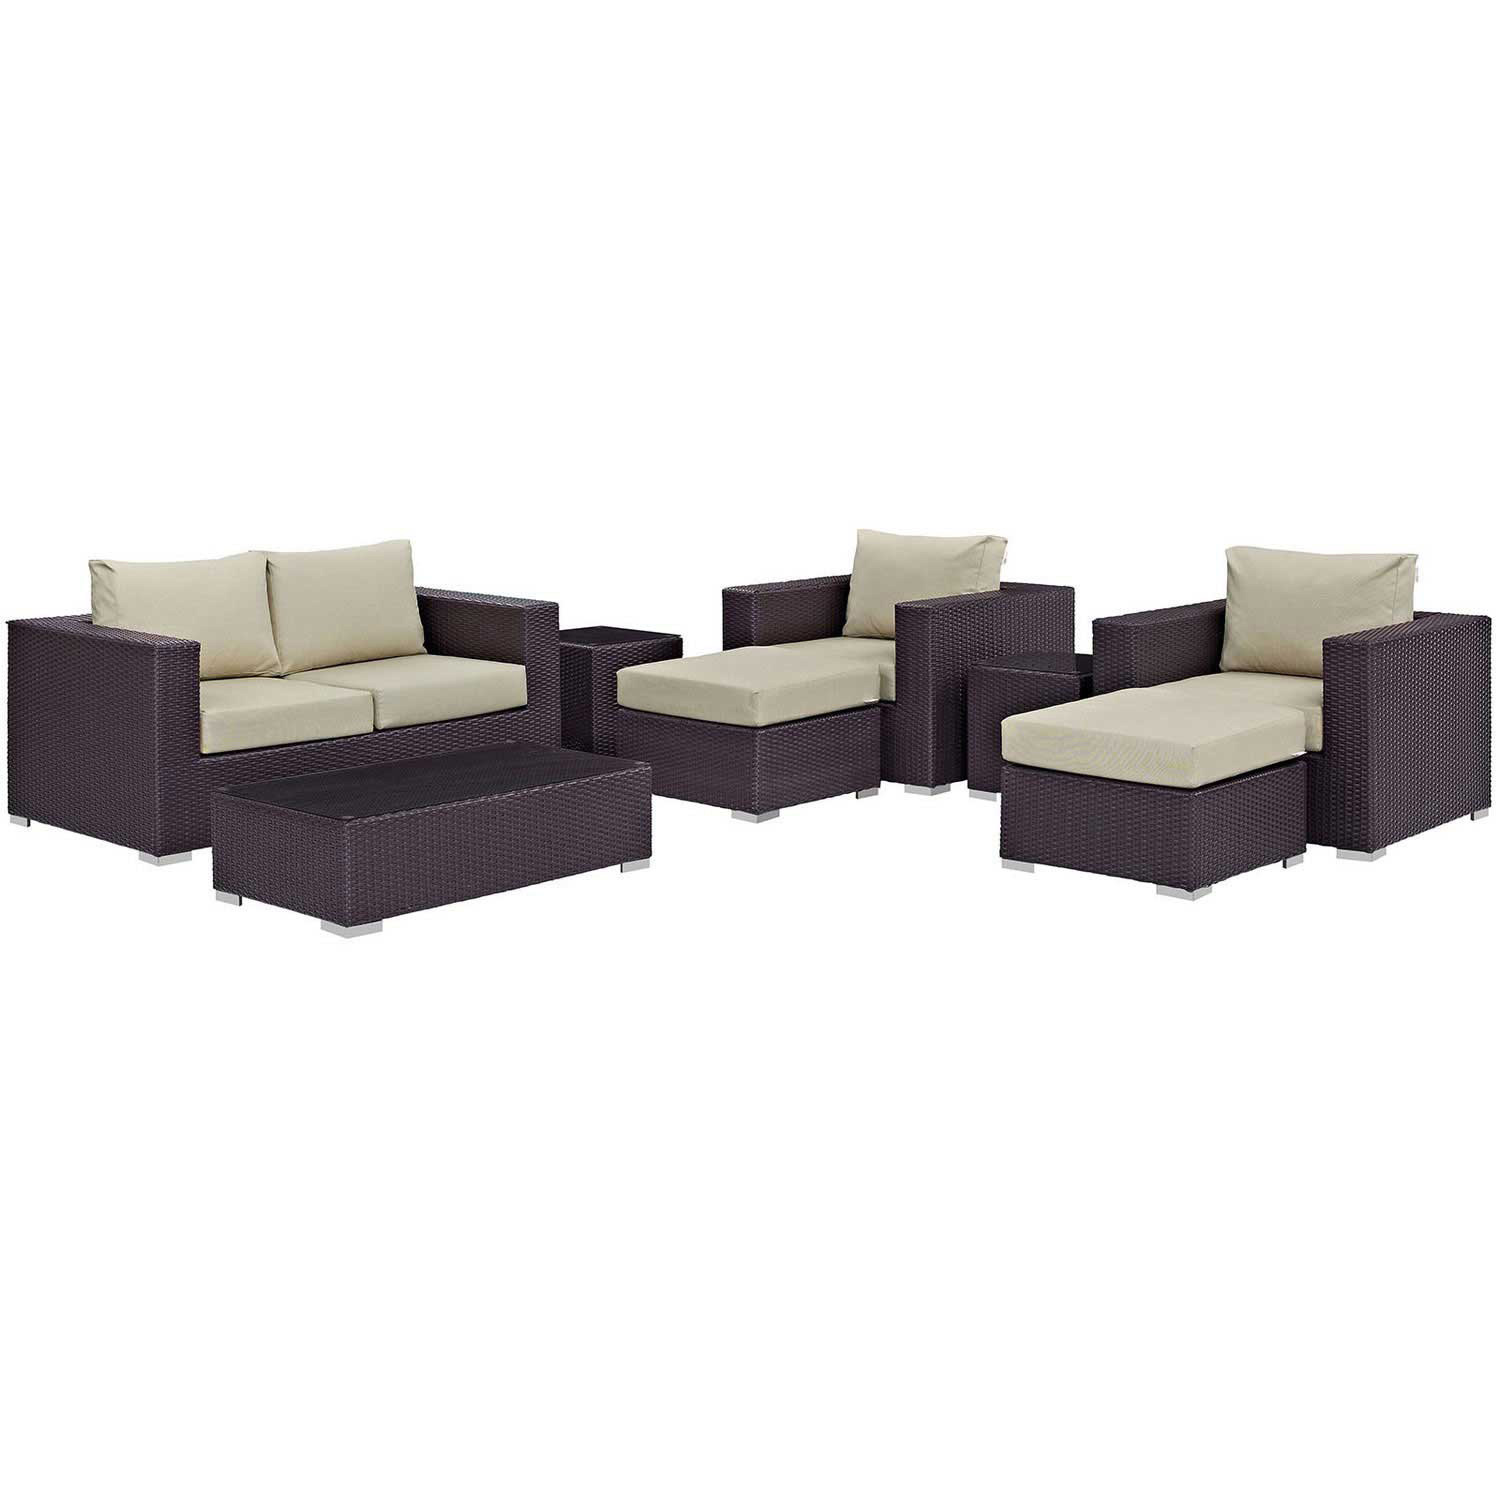 Modway Convene 8 Piece Outdoor Patio Sofa Set - Espresso Beige